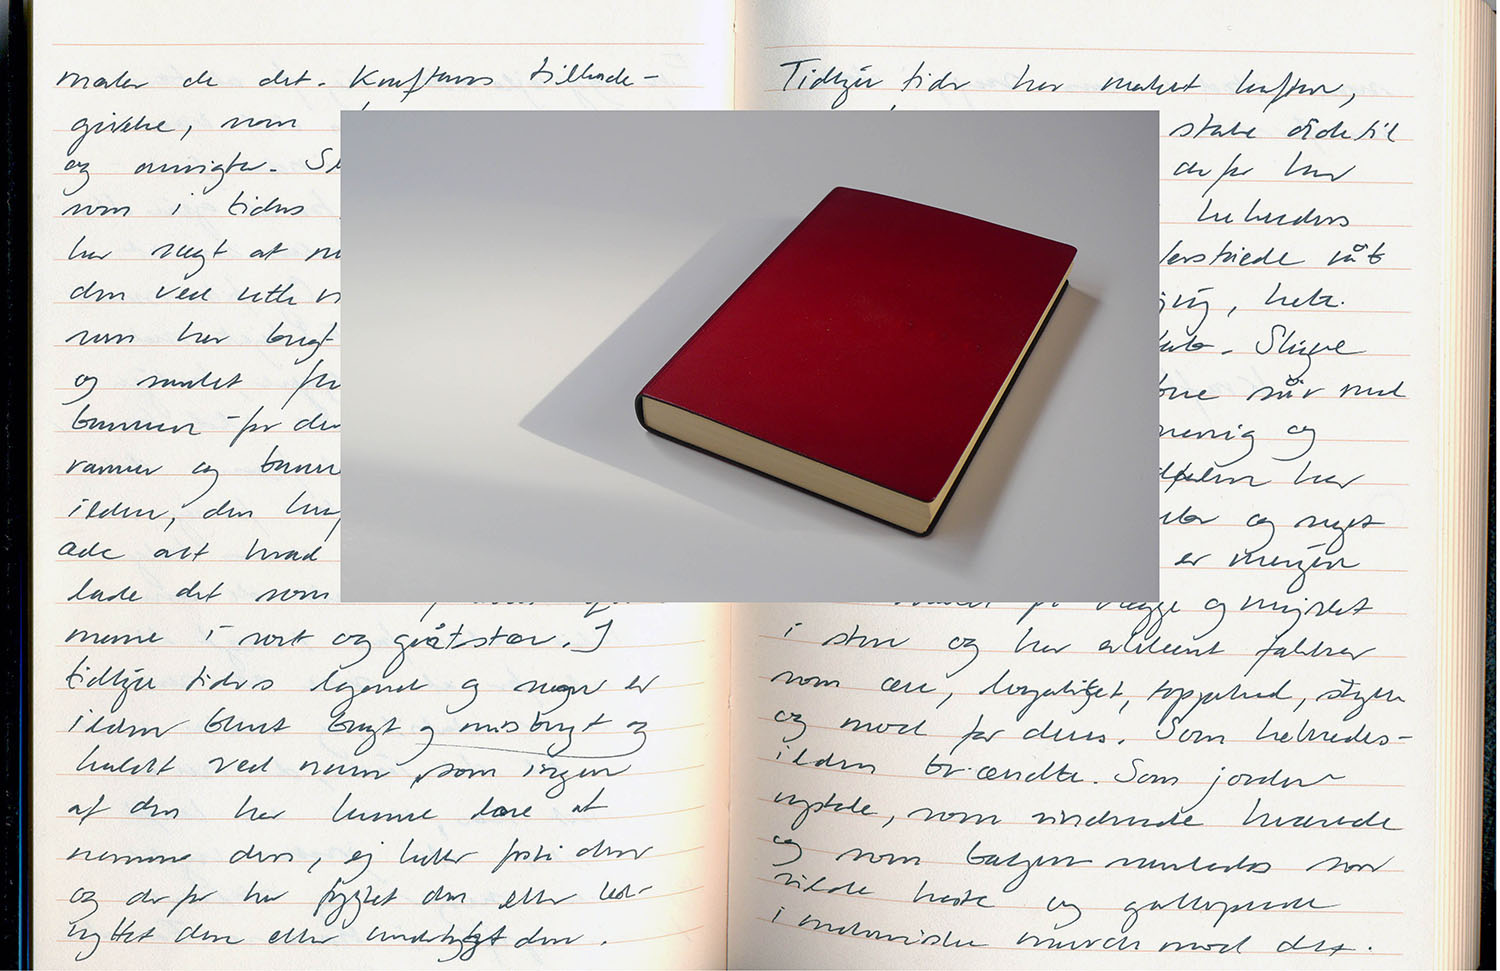 2013, Red - Ode to Battle   Helene Lundbye Petersen,  Red - Ode to Battle,  2013, Calligraphic Manuscript, 294 pages handwritten in Copenhagen and Berlin, lined white paper, red leather cover. 17 x 12.5 x 1.8 cm.